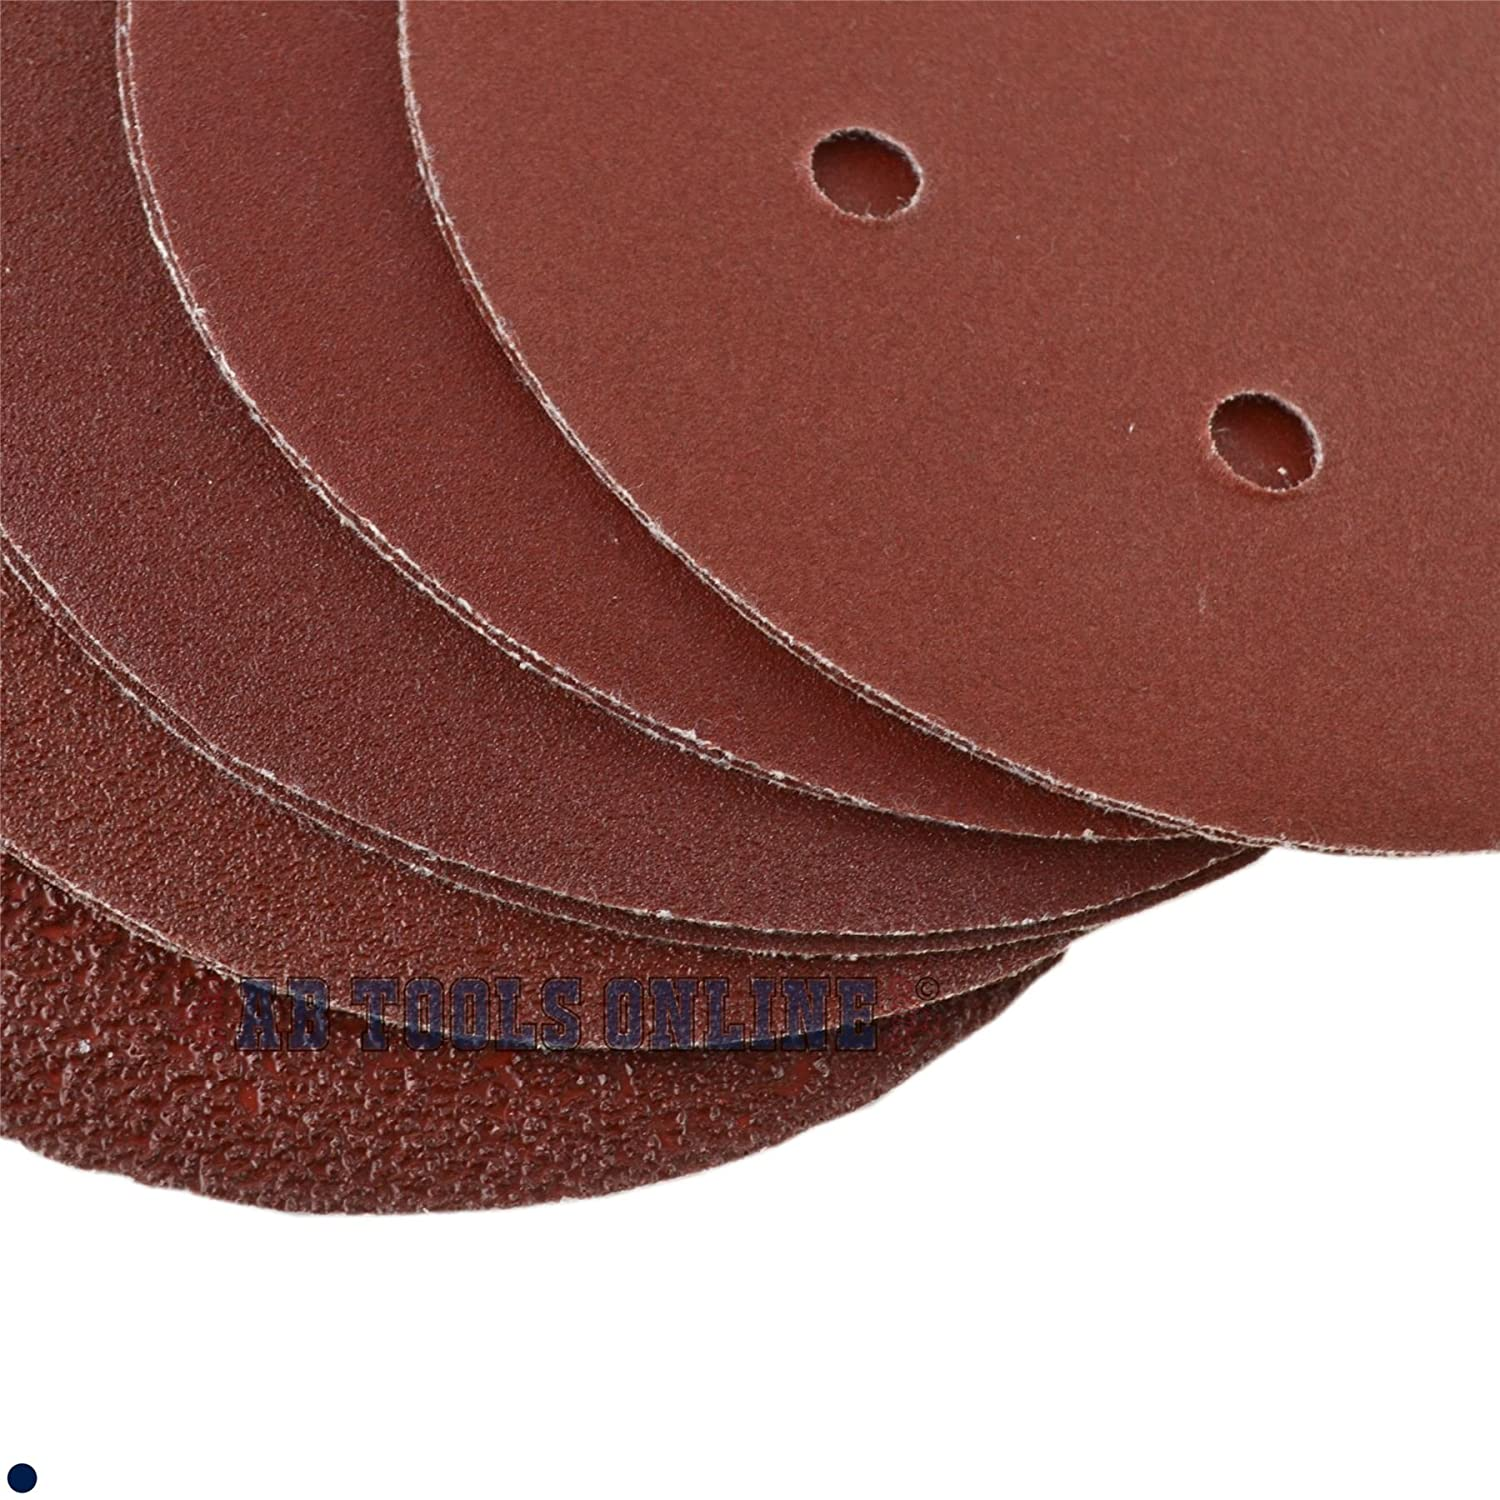 Hook/Loop Sanding Abrasive Discs Orbital DA Palm Sander 100PK 150mm Mixed Grit AB Tools